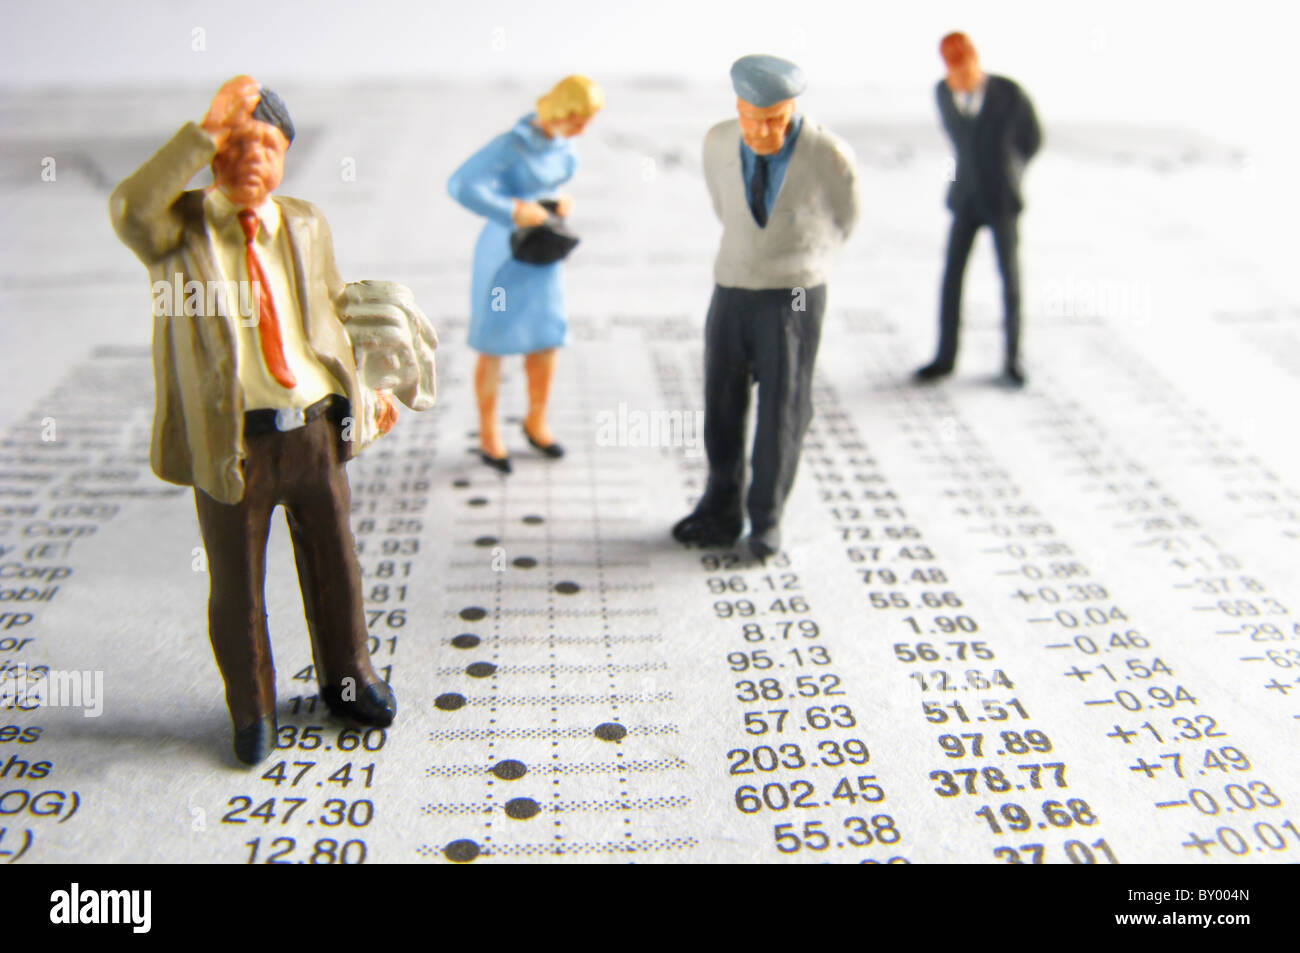 Business figurines on financial figures - Stock Image